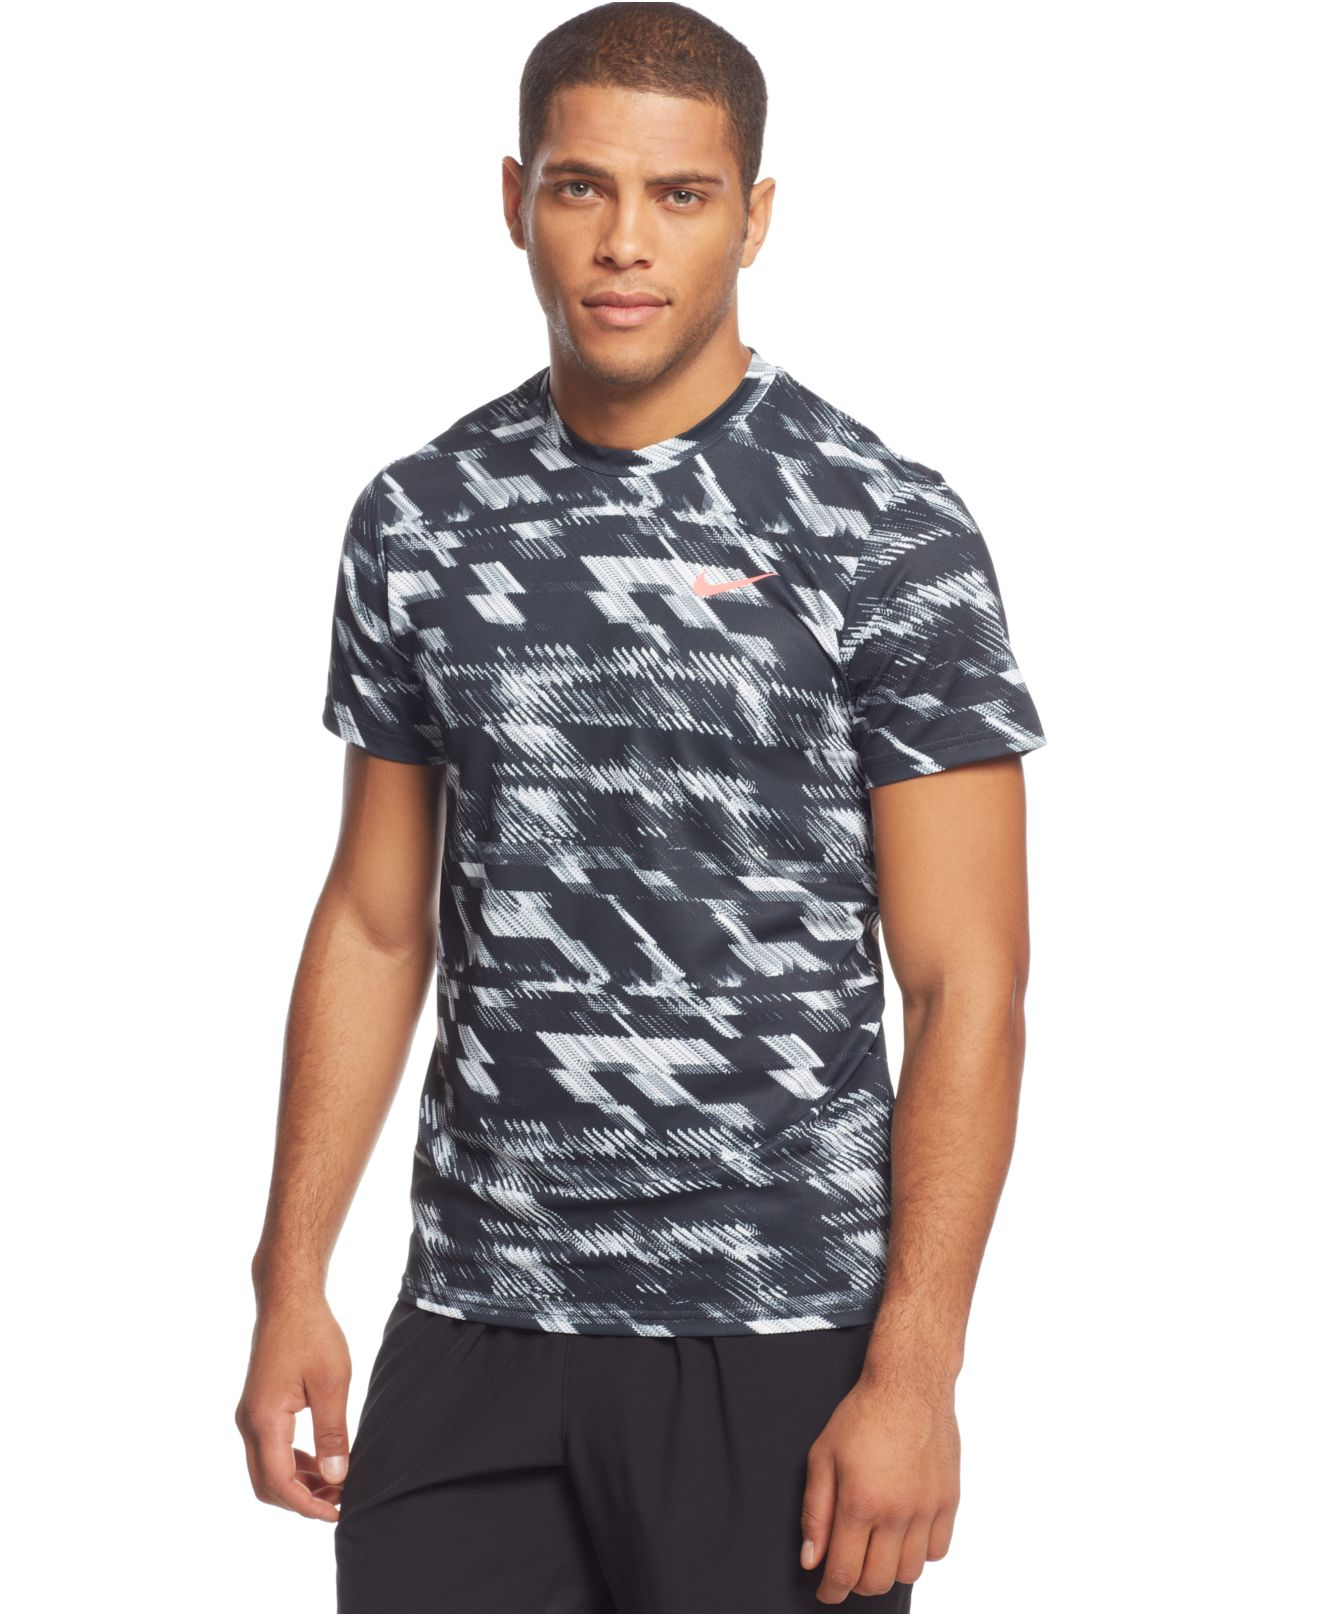 Nike rally sphere printed dri fit t shirt in gray for men for Dri fit material shirts